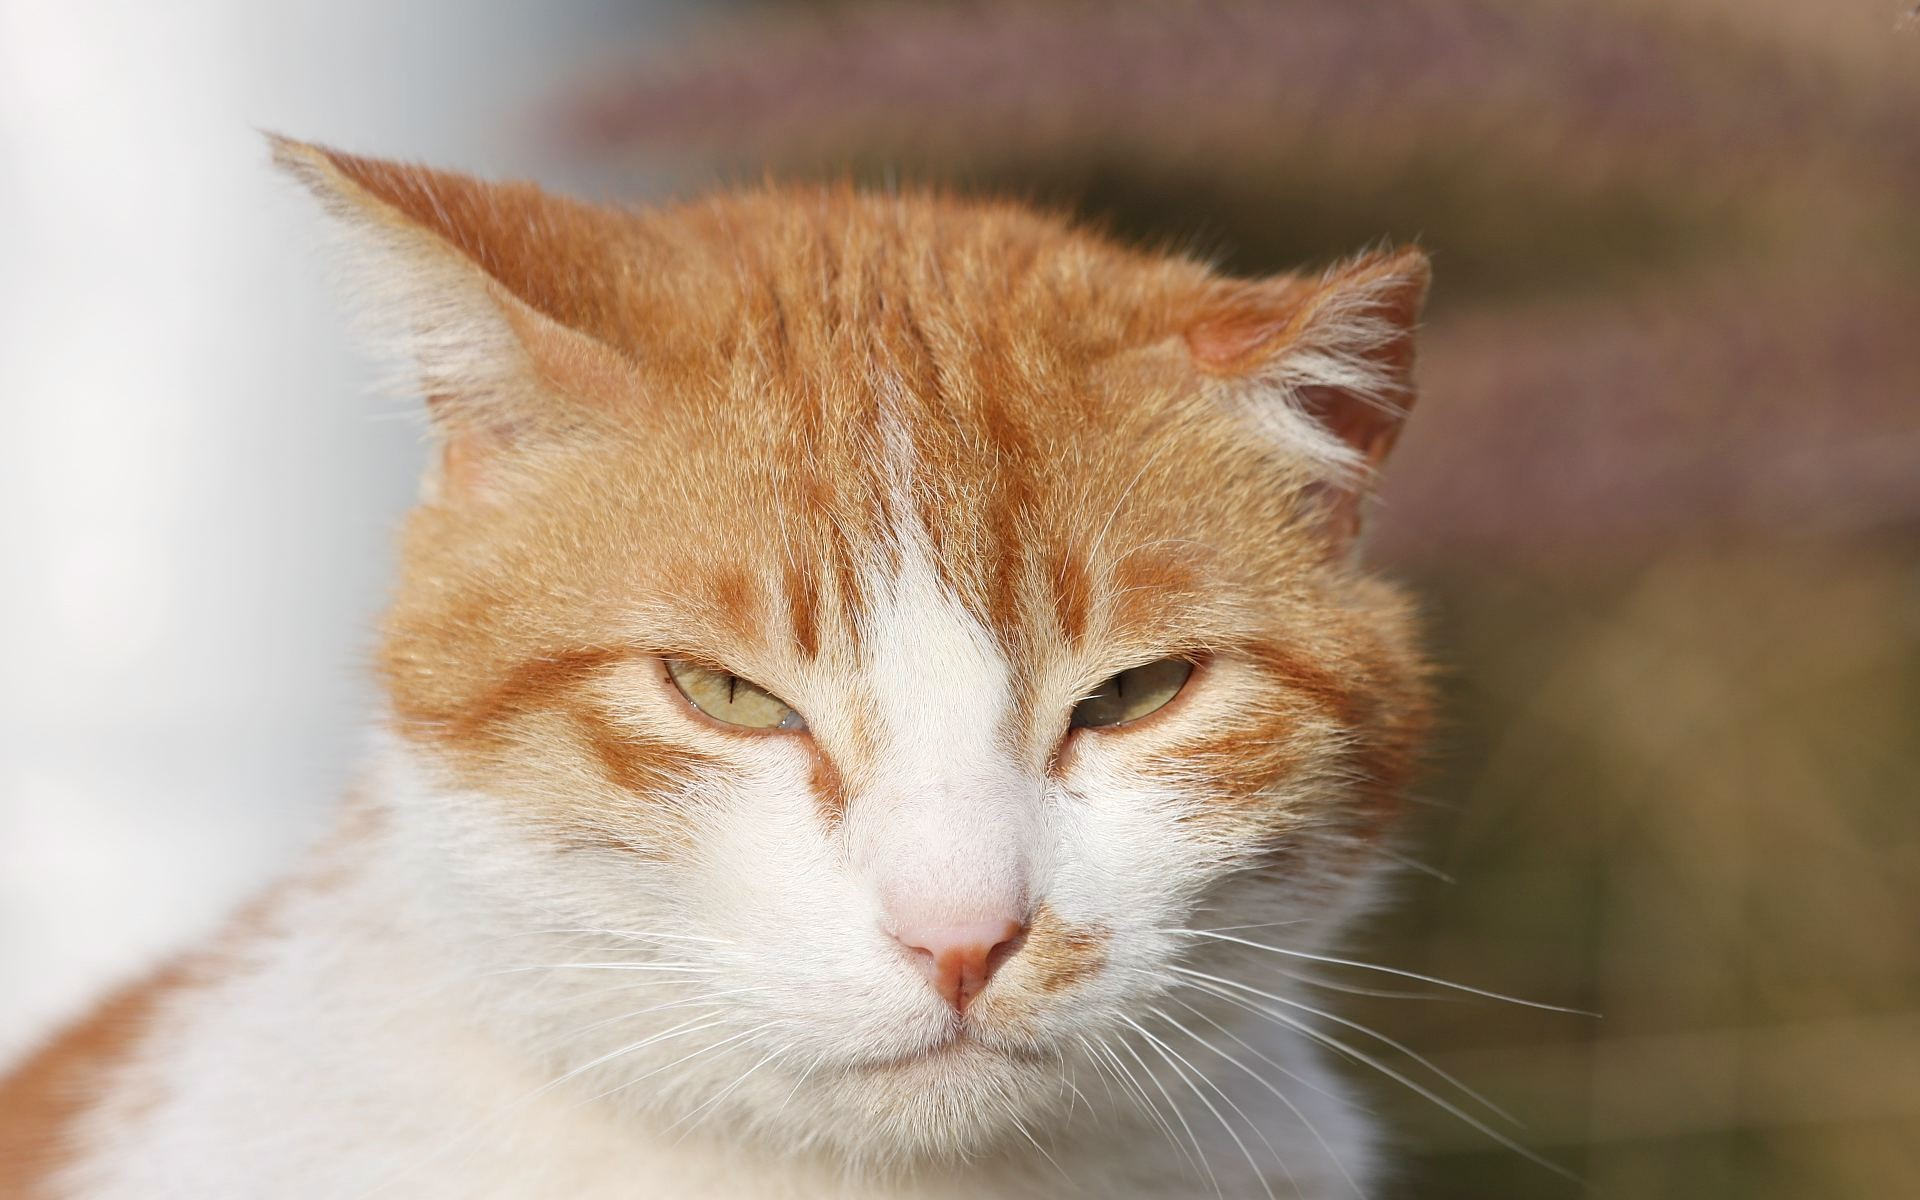 Sleepy Orange and White Cat wallpapers and stock photos